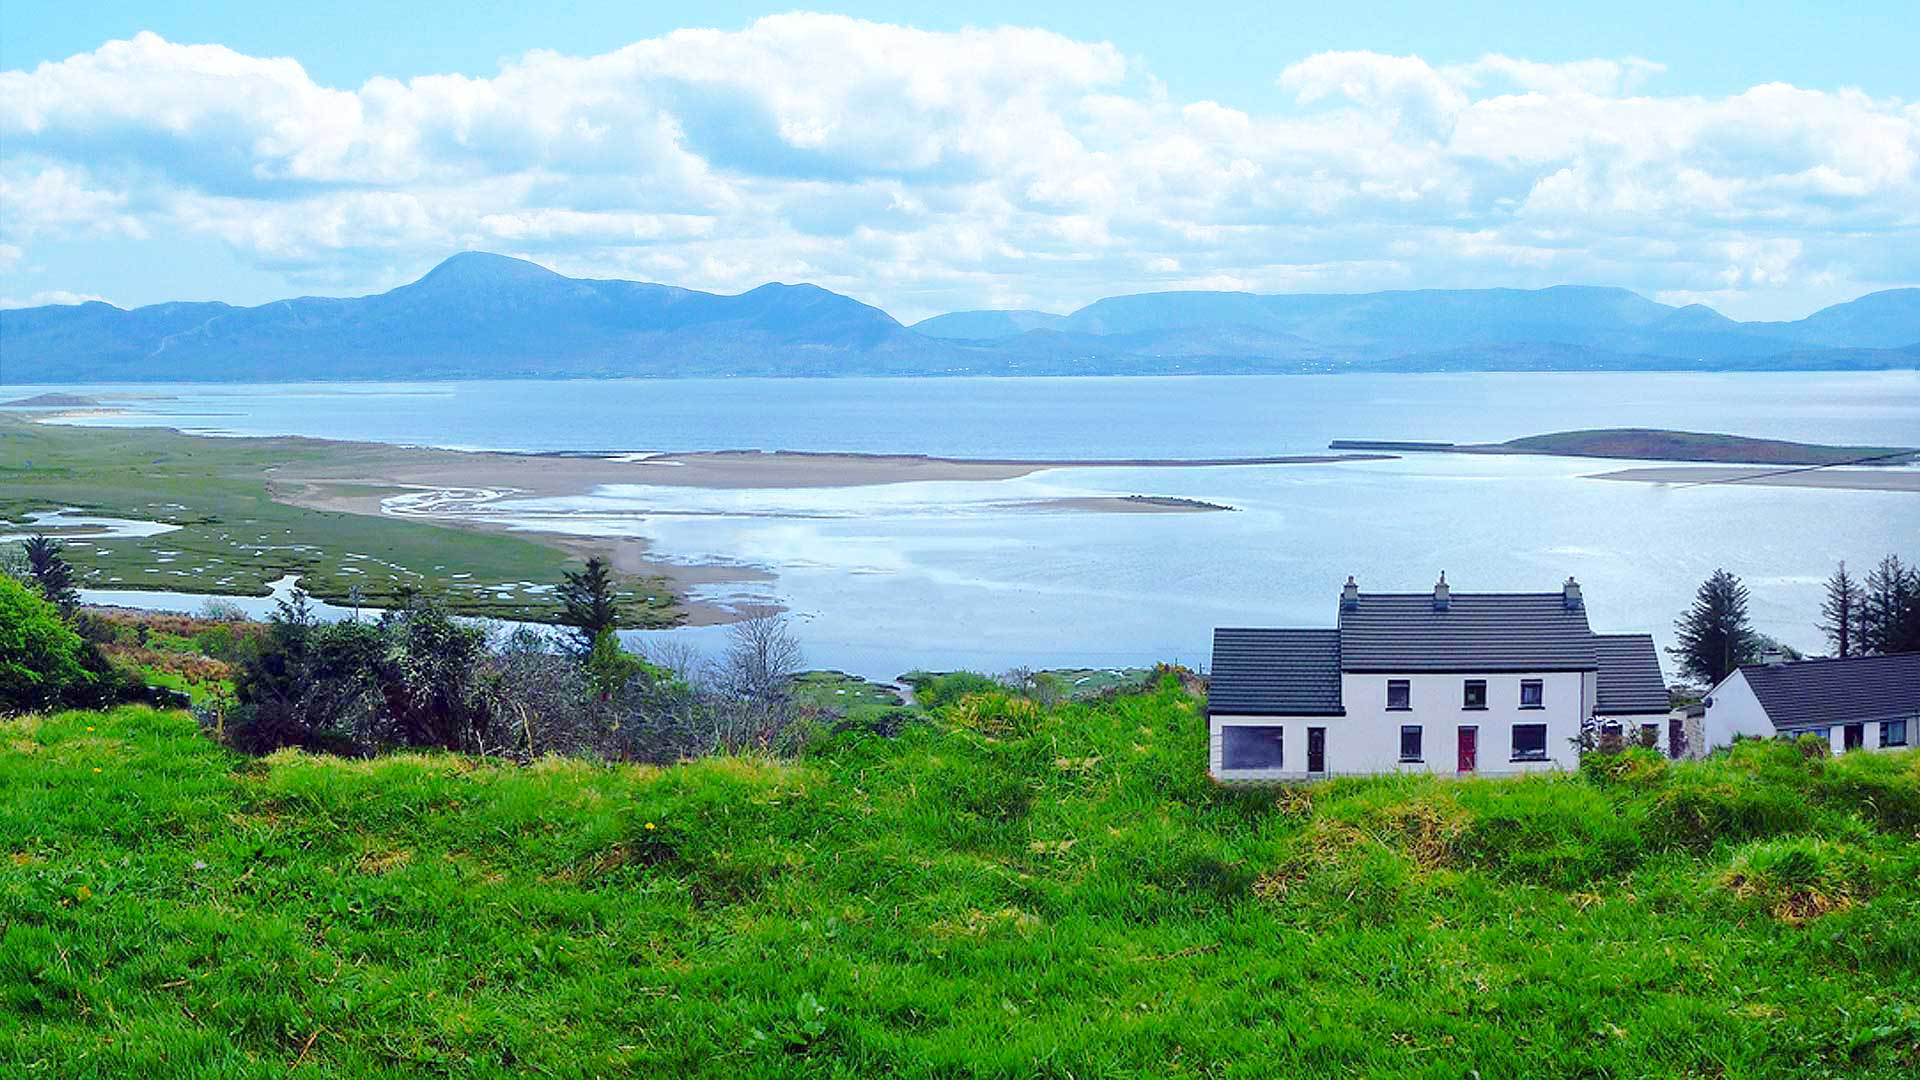 http://mulrannyhouse.ie/wp-content/uploads/2015/02/mulranny-house-mountain-view3.jpg